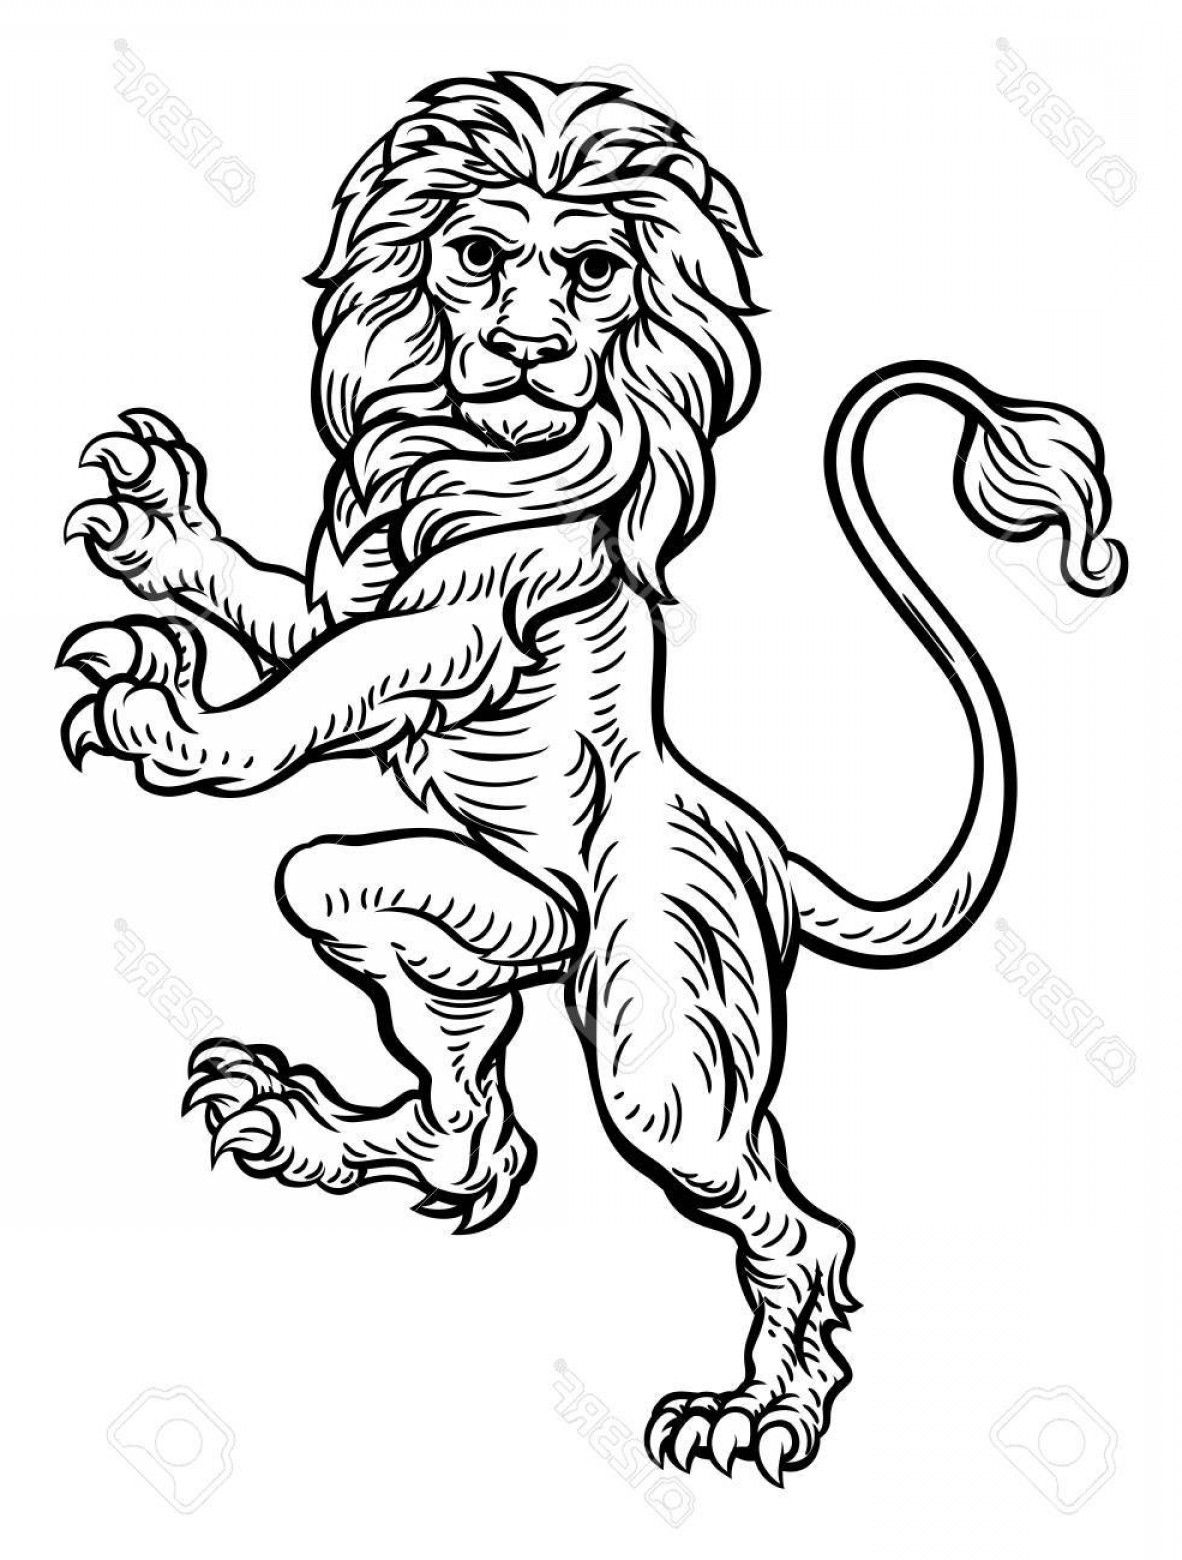 Standing Lions Crest Vector: Photostock Vector A Lion Standing Rampant On Its Hind Legs From A Coat Of Arms Or Heraldic Crest